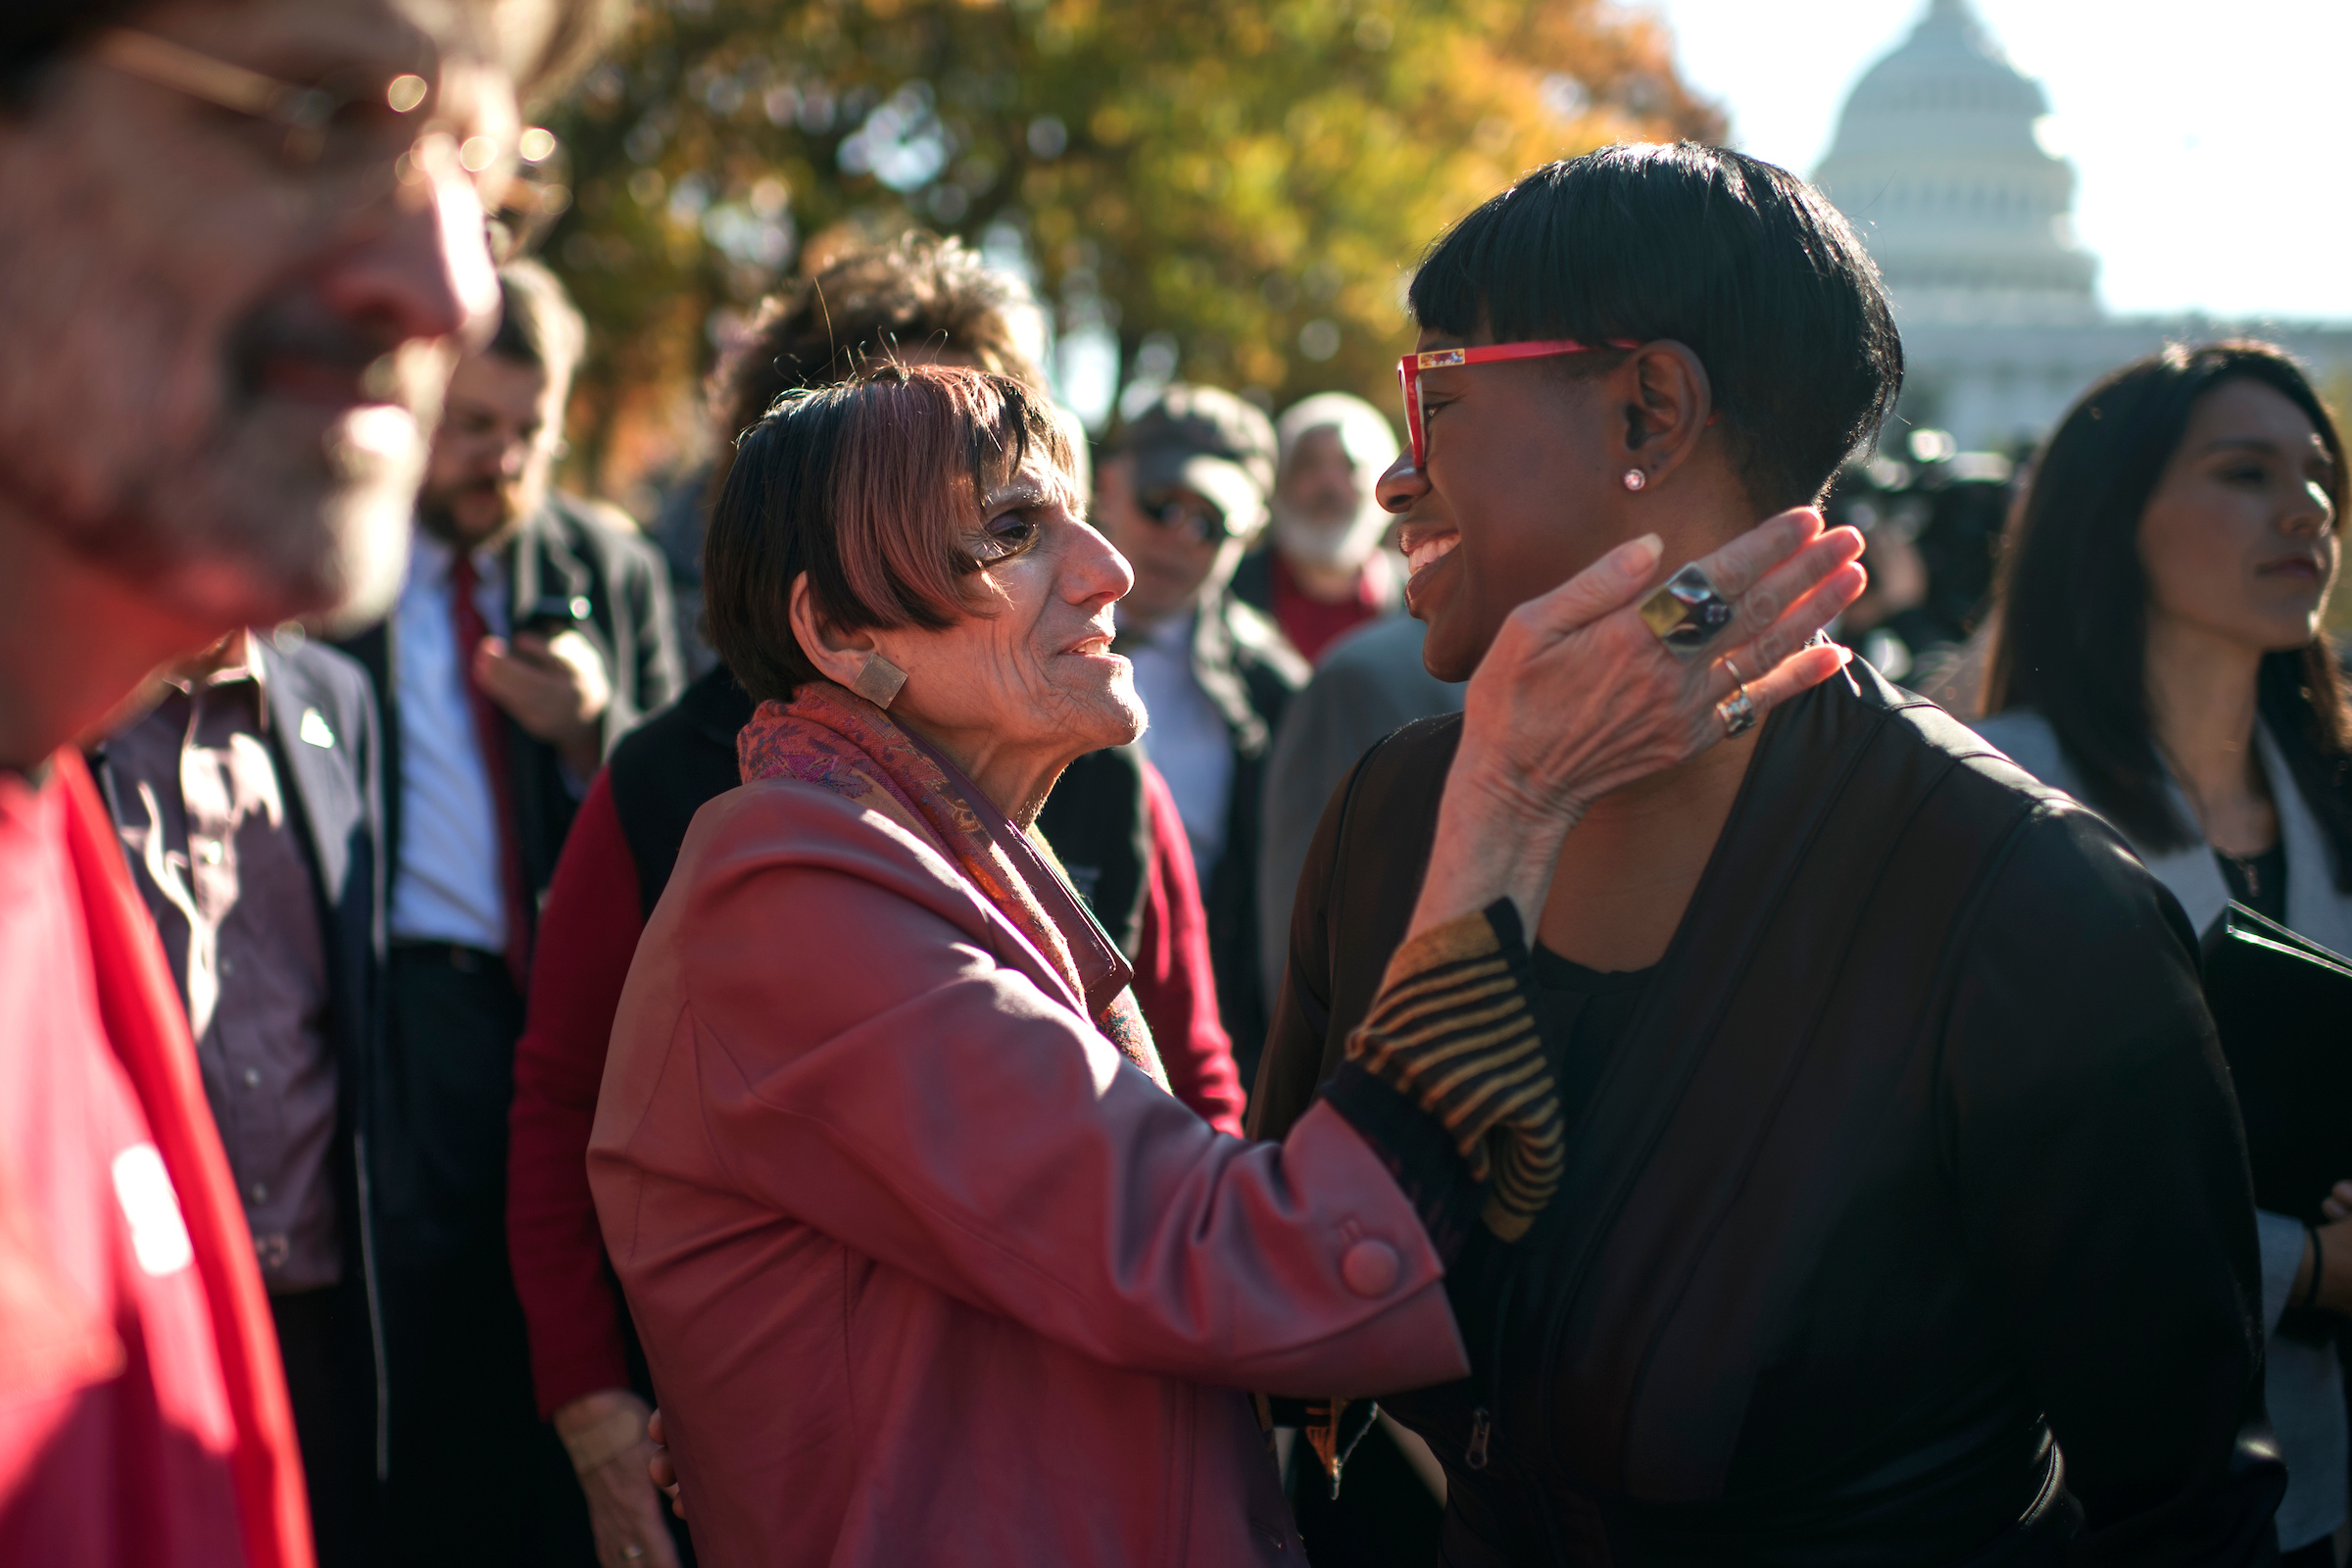 Connecticut Rep. Rosa DeLauro greets former Ohio state Sen. Nina Turner at the rally on Thursday. Hawaii Rep. Tulsi Gabbard, background right, also attended. (Tom Williams/CQ Roll Call)